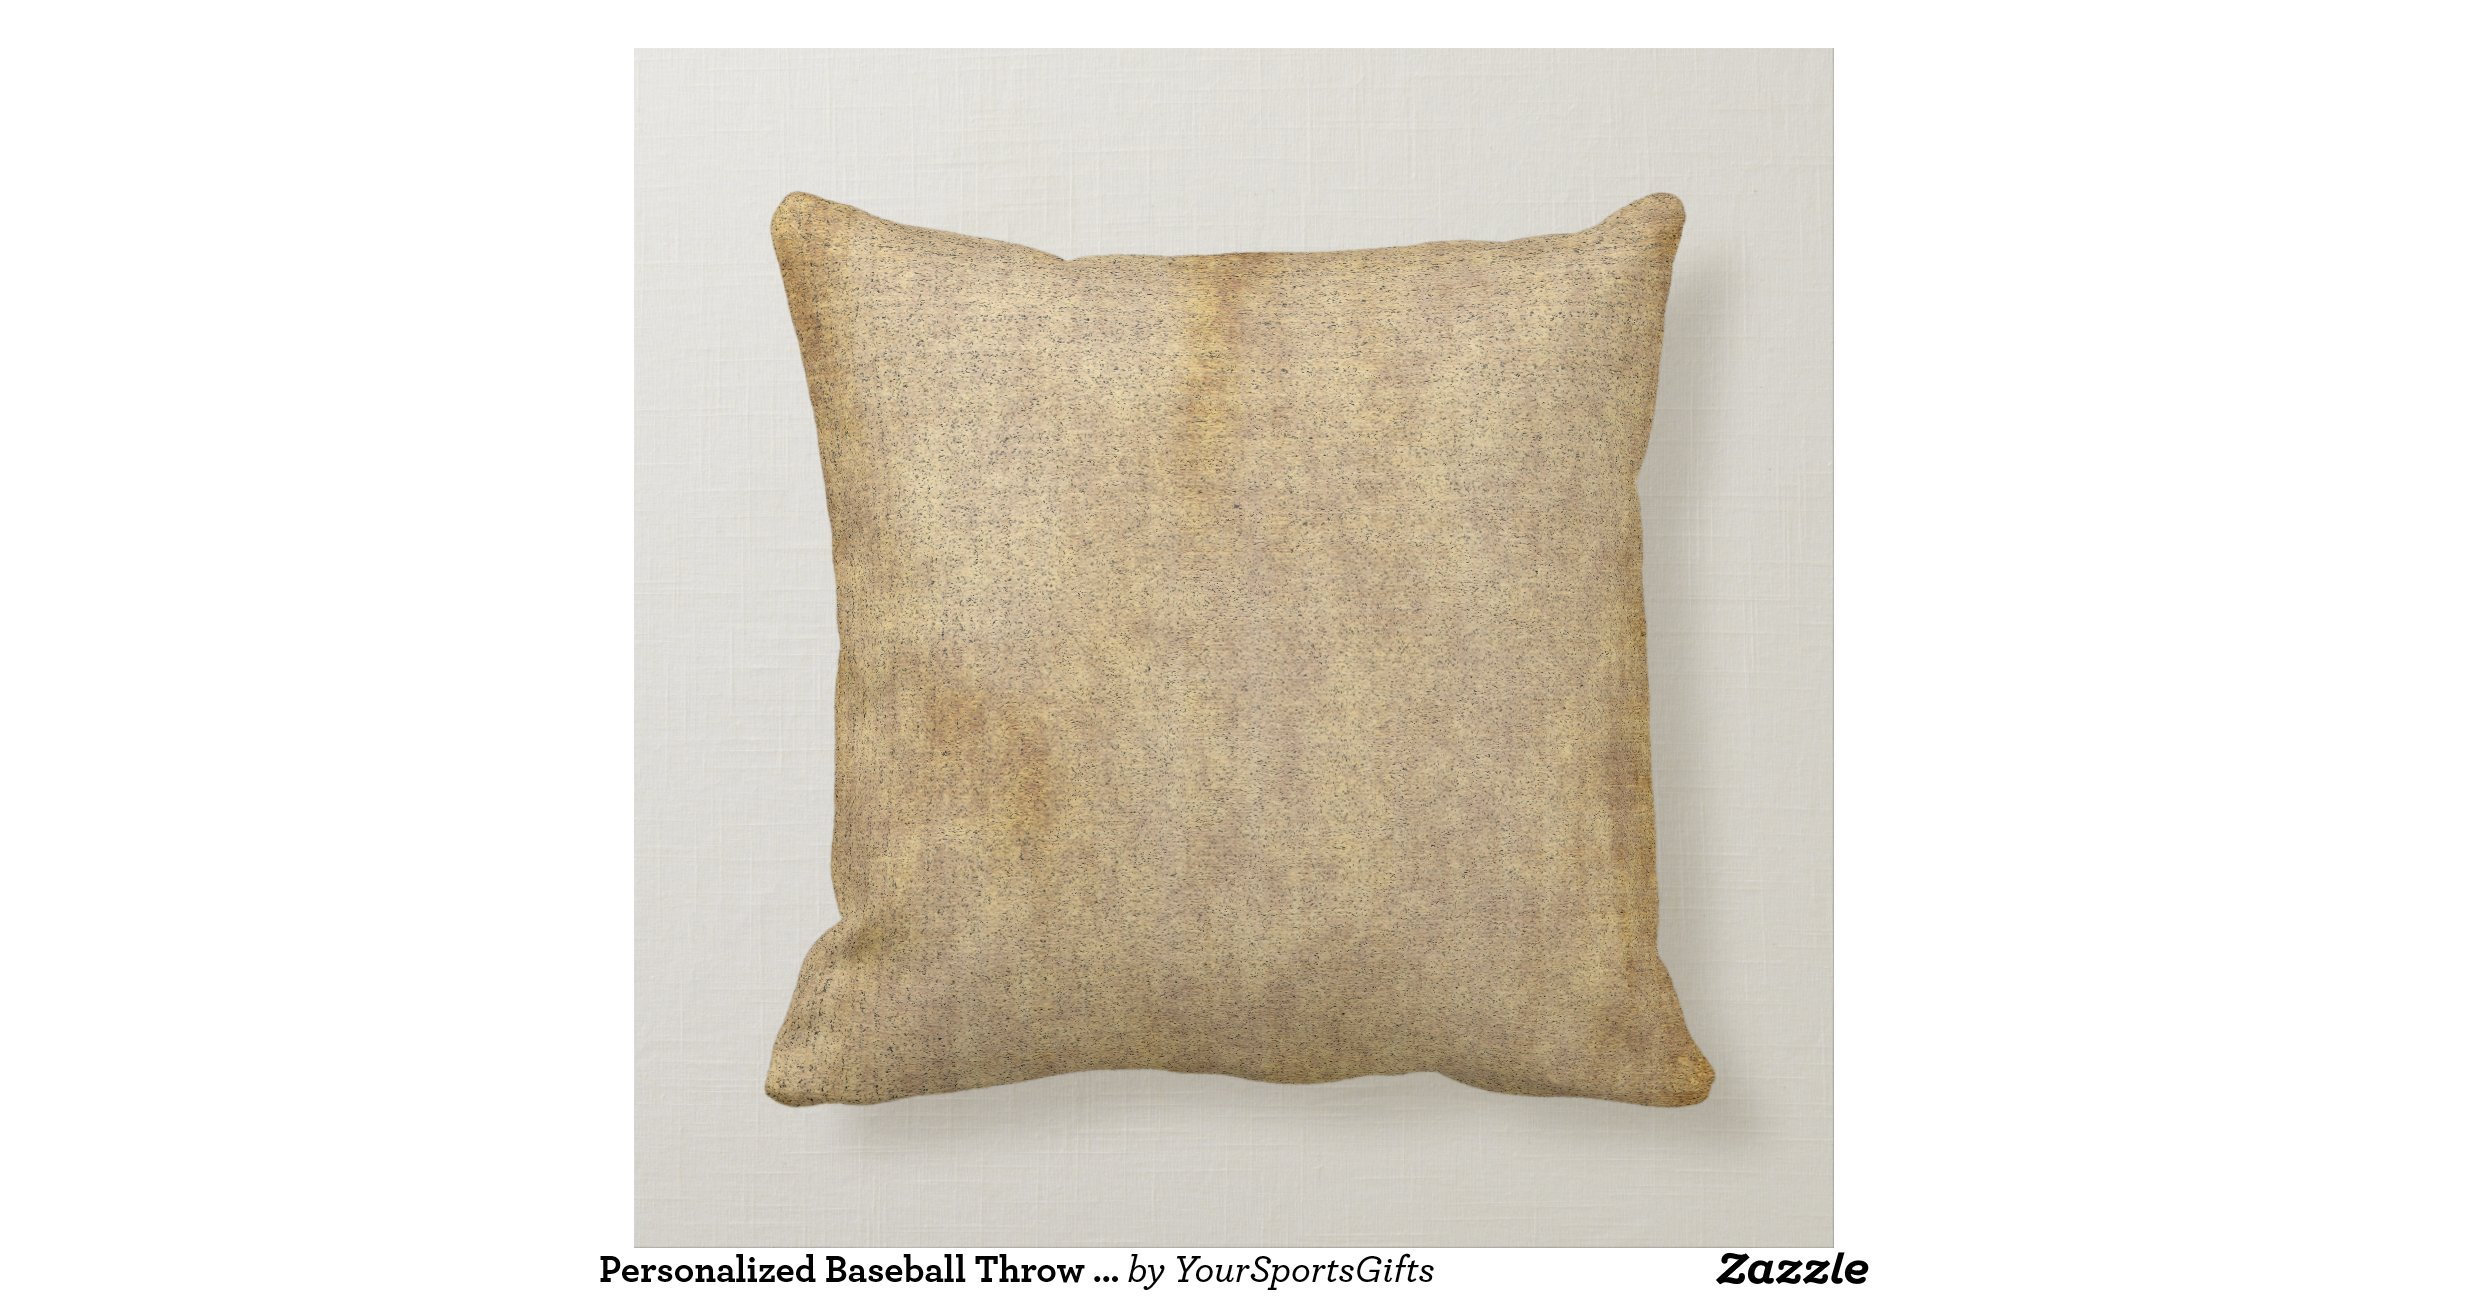 Throw Pillows Custom : personalized_baseball_throw_pillows_jersey_number-rc0334c3e42814988b6452a098eb52f06_i52ni_8byvr ...